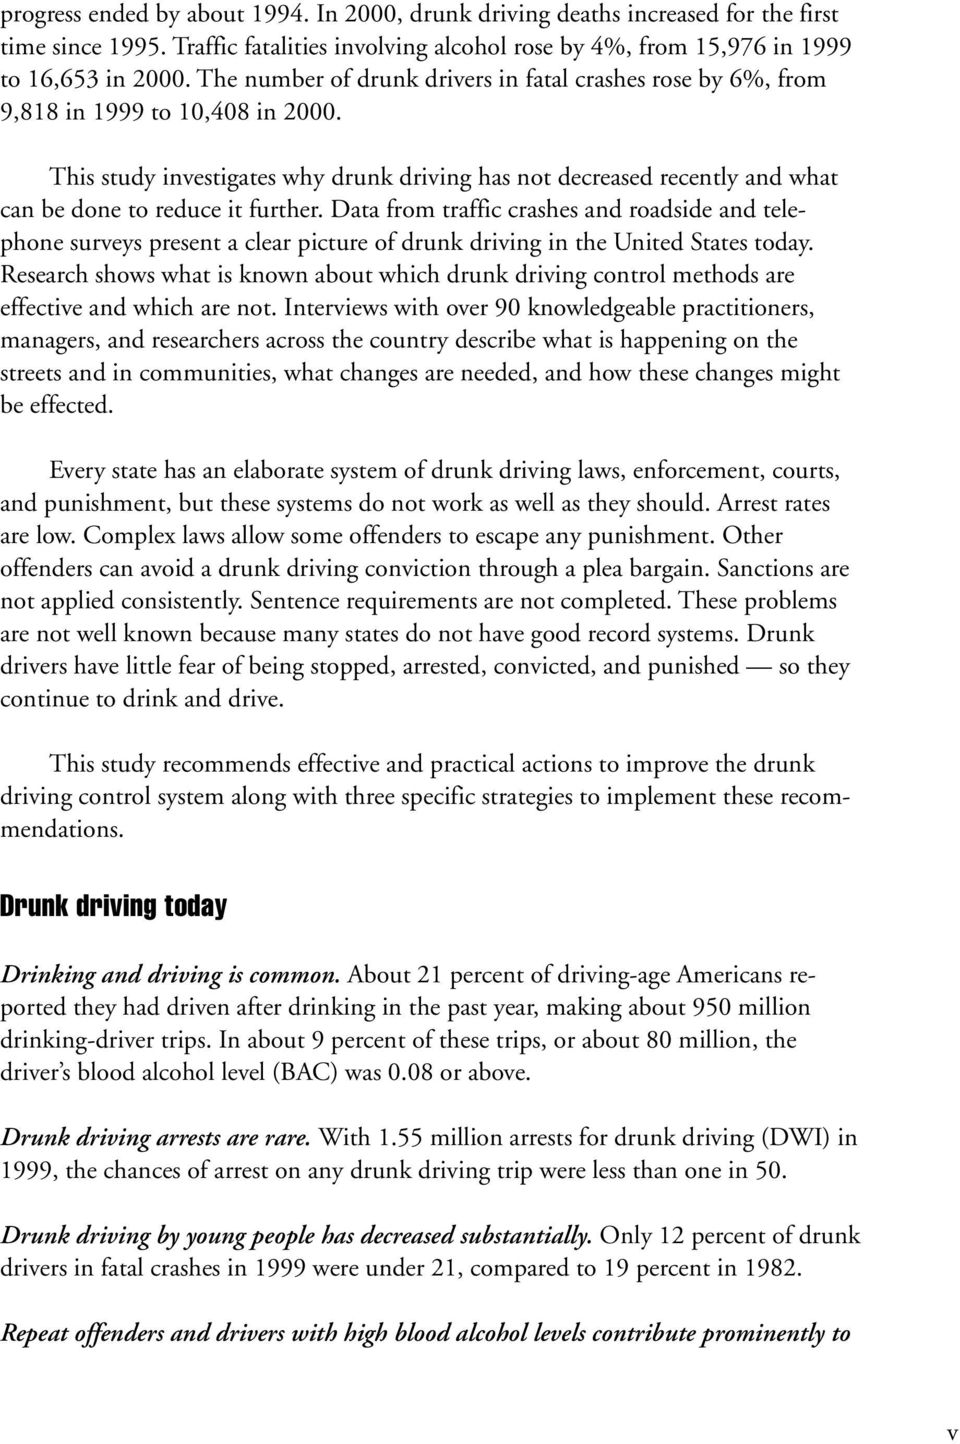 This study investigates why drunk driving has not decreased recently and what can be done to reduce it further.